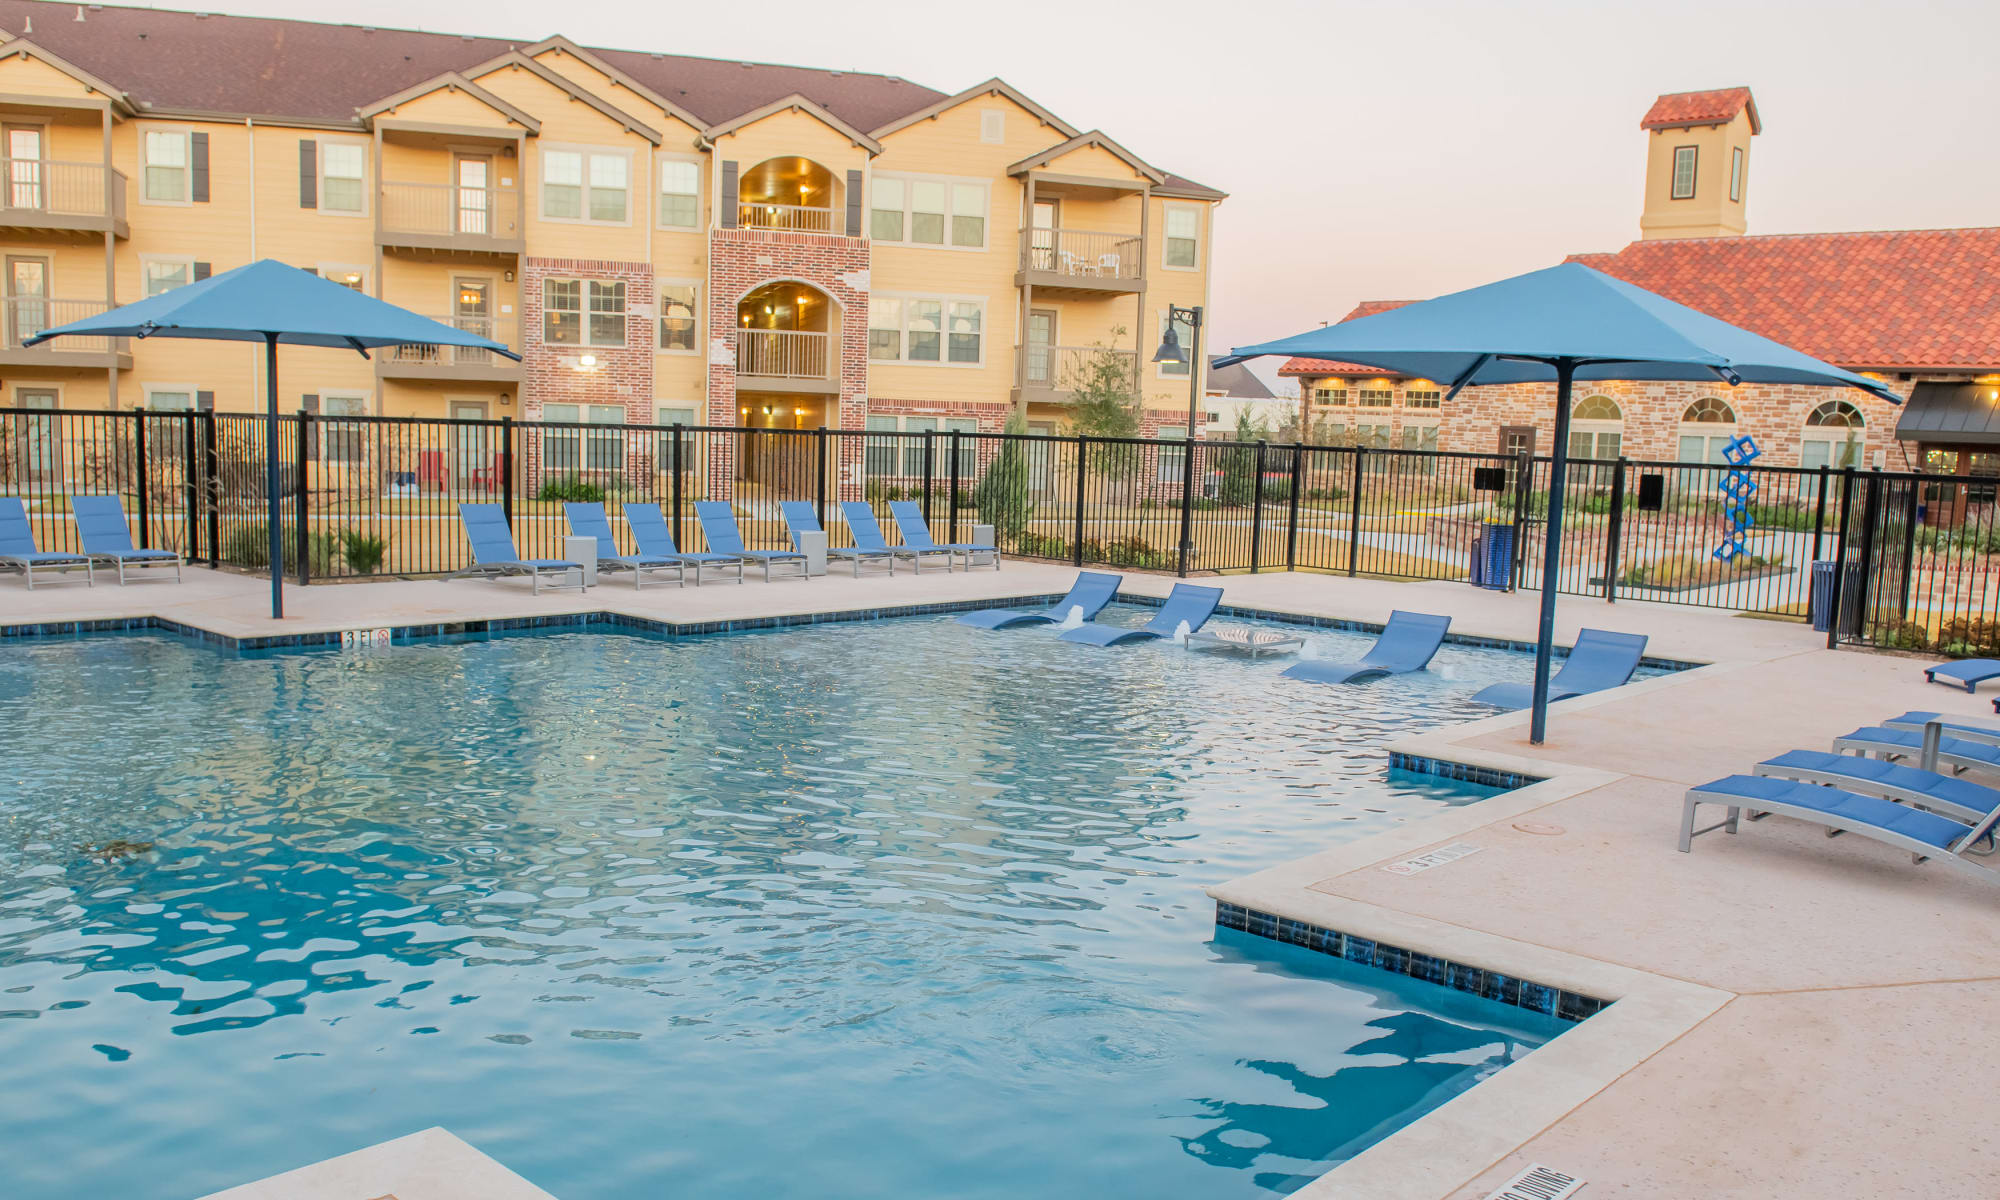 Outdoor resort style pool and exterior apartment view Portico at Friars Creek Apartments in Temple, Texas